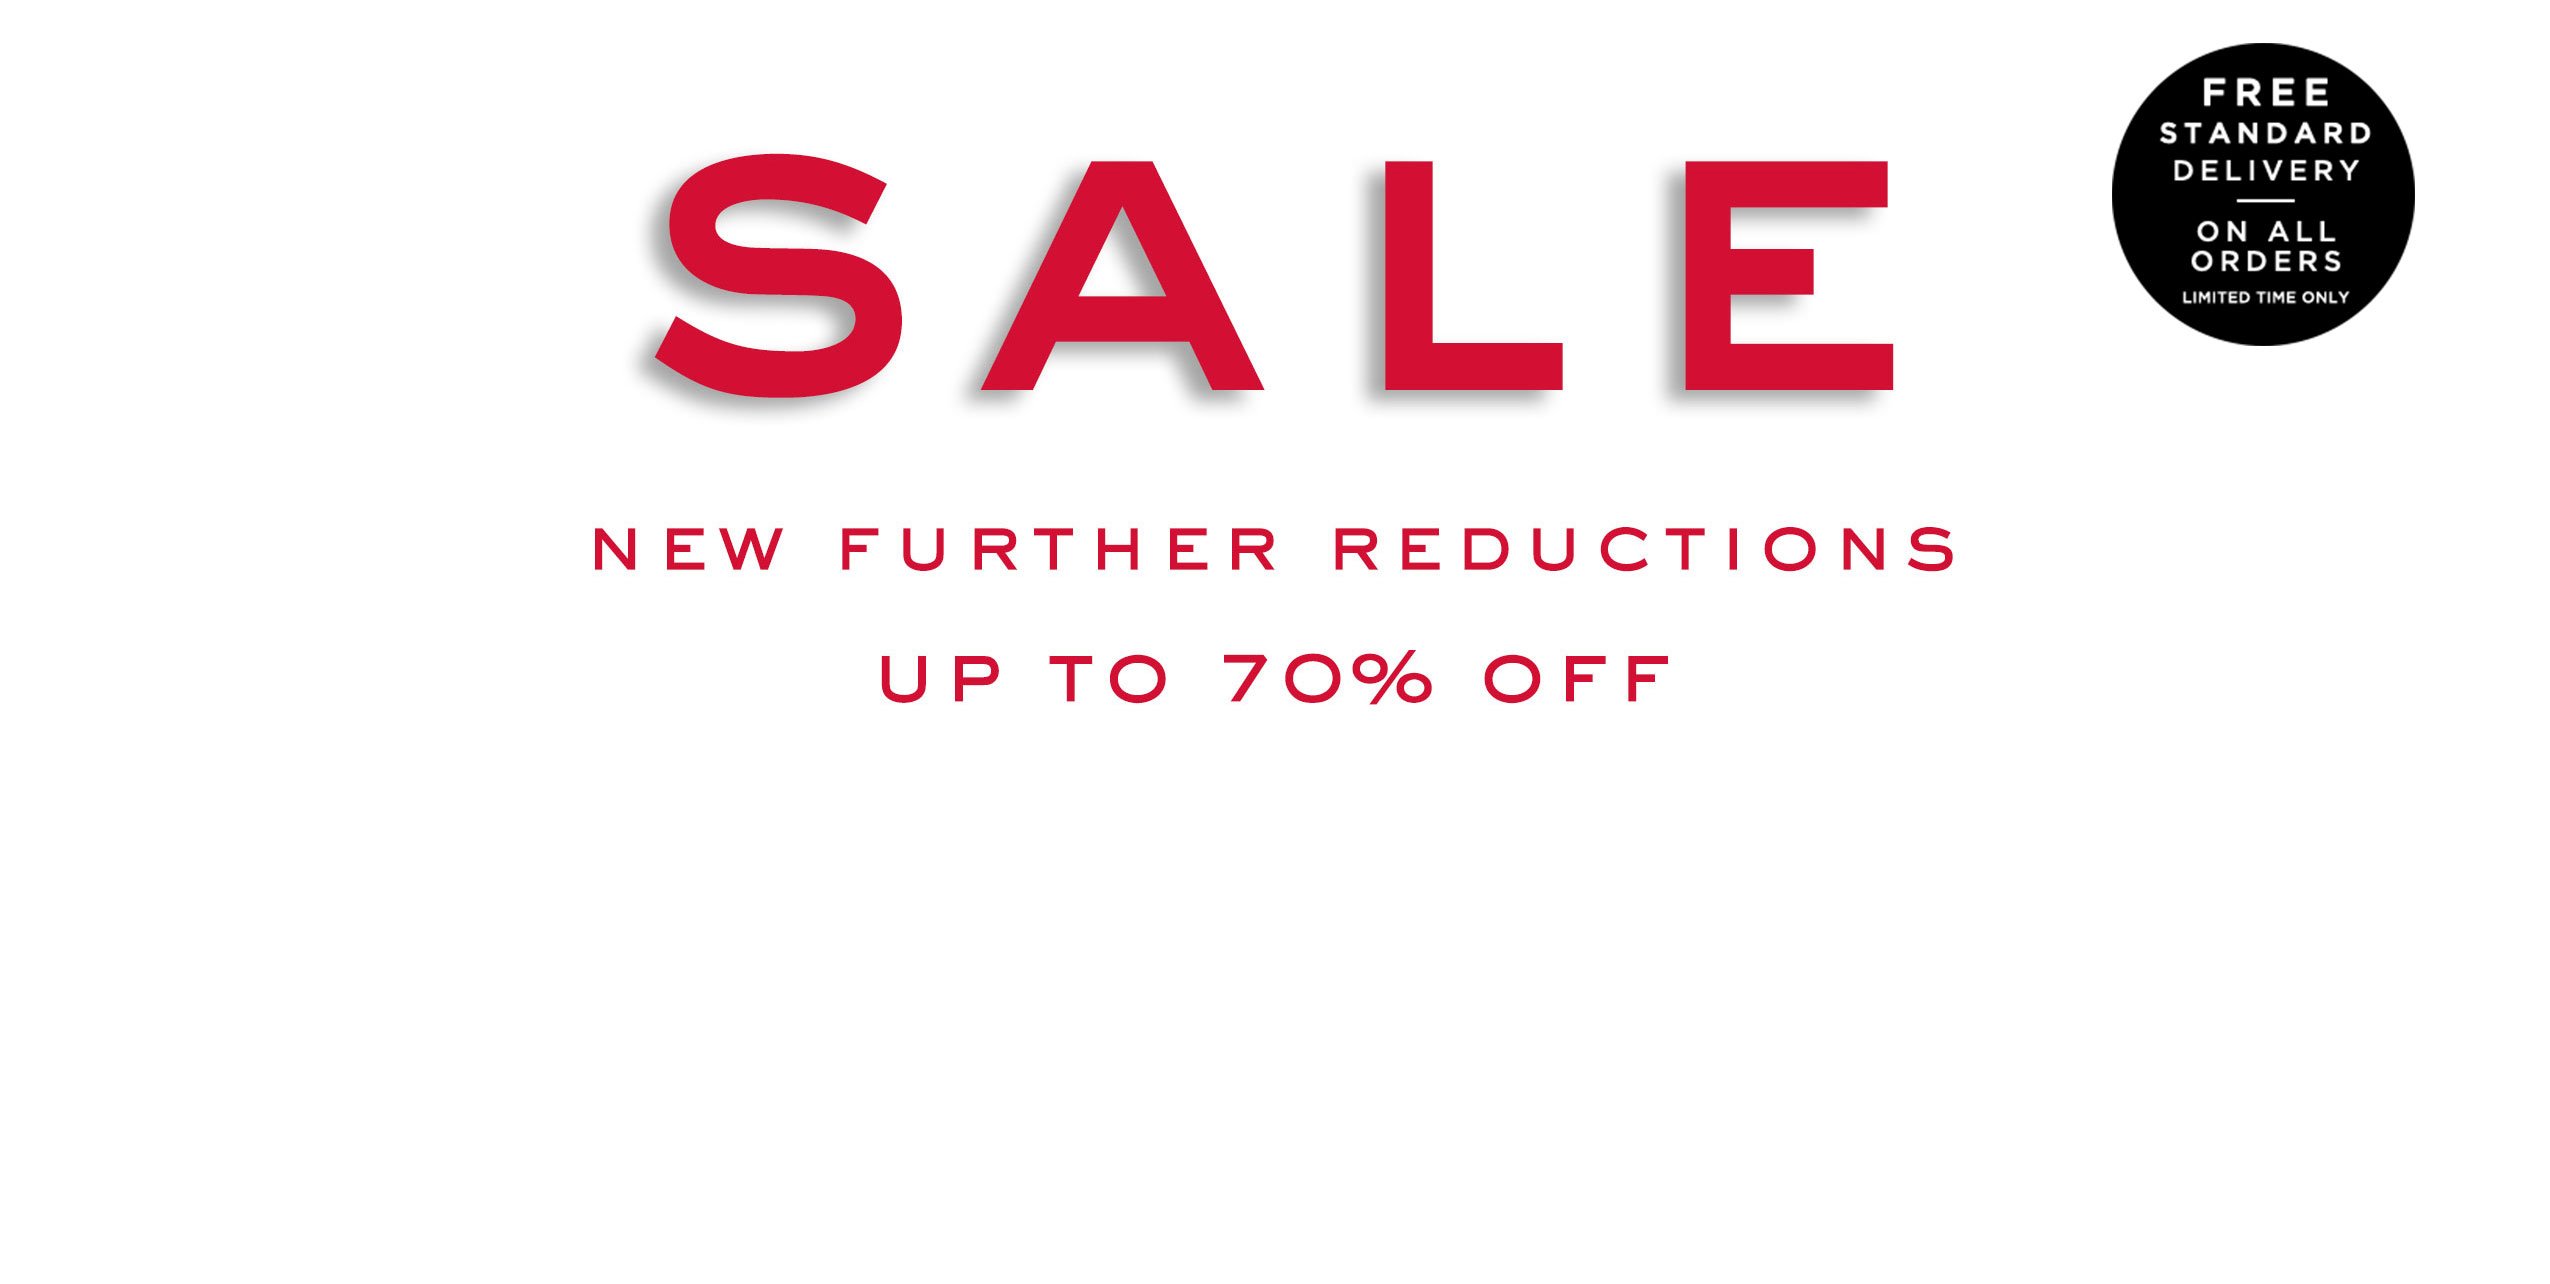 Sale: Up to 70% Off plus free delivery on all orders